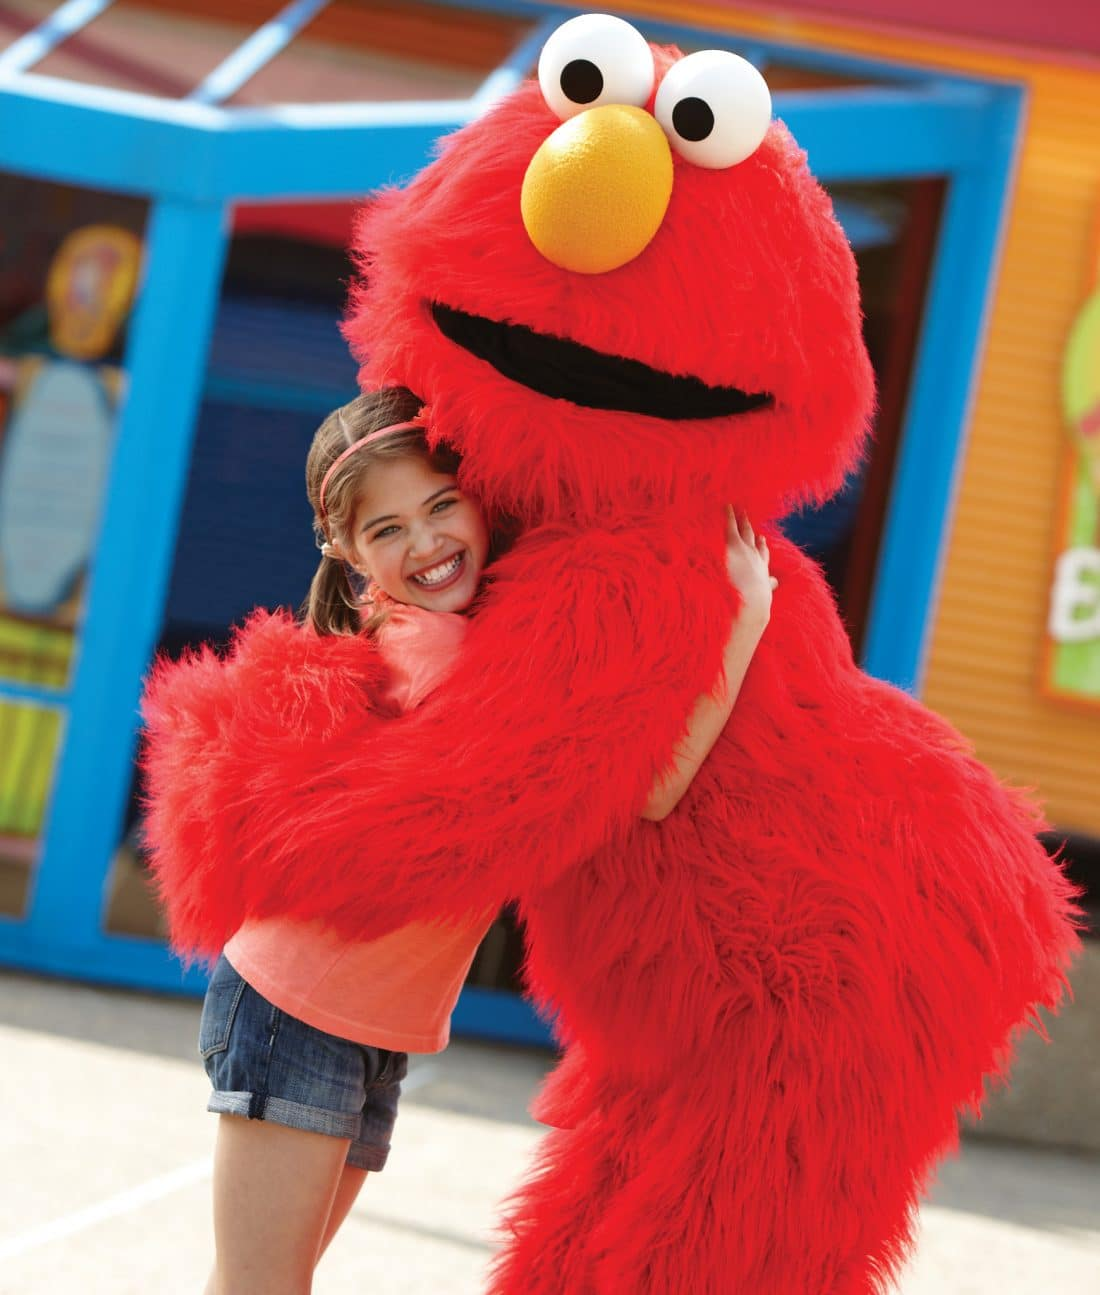 Every weekend from April 13 through May 20, join Elmo, Cookie Monster, Abby Cadabby and everyone's favorite furry friends for fun at Sesame Street® Kids' Weekends. Grab your spring time tickets today for some weekend fun with Elmo and all his friends.